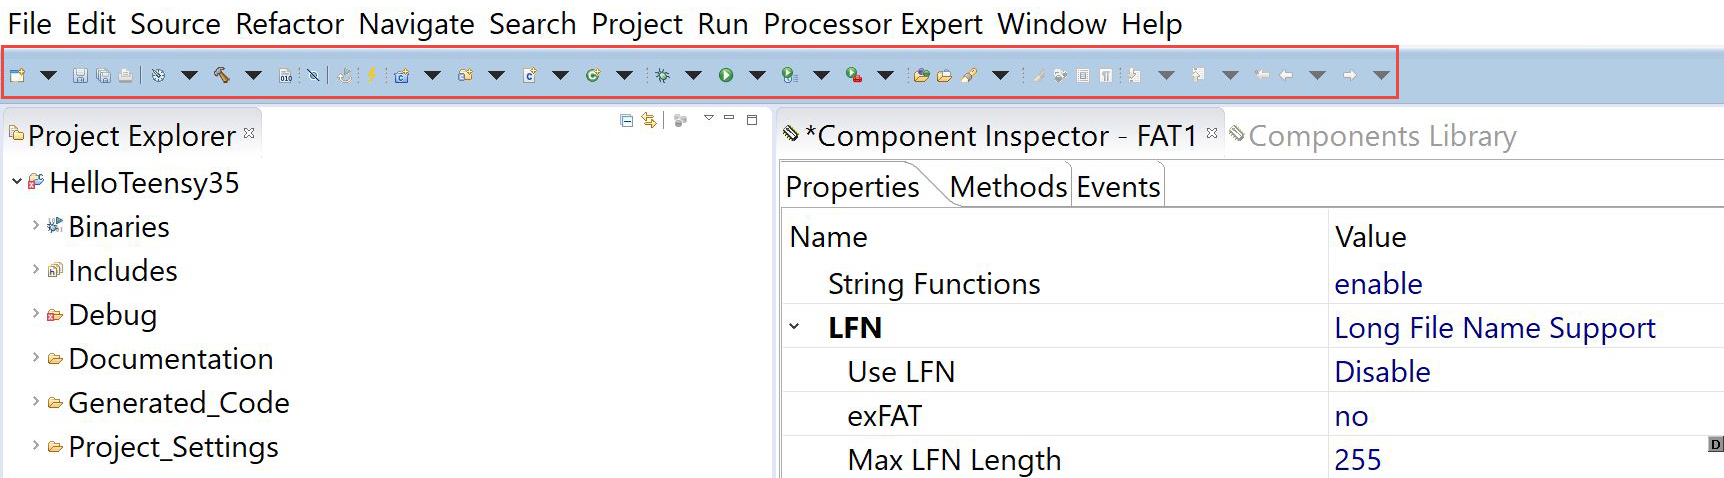 Dealing with Eclipse and Very Small Icons on Ultra High